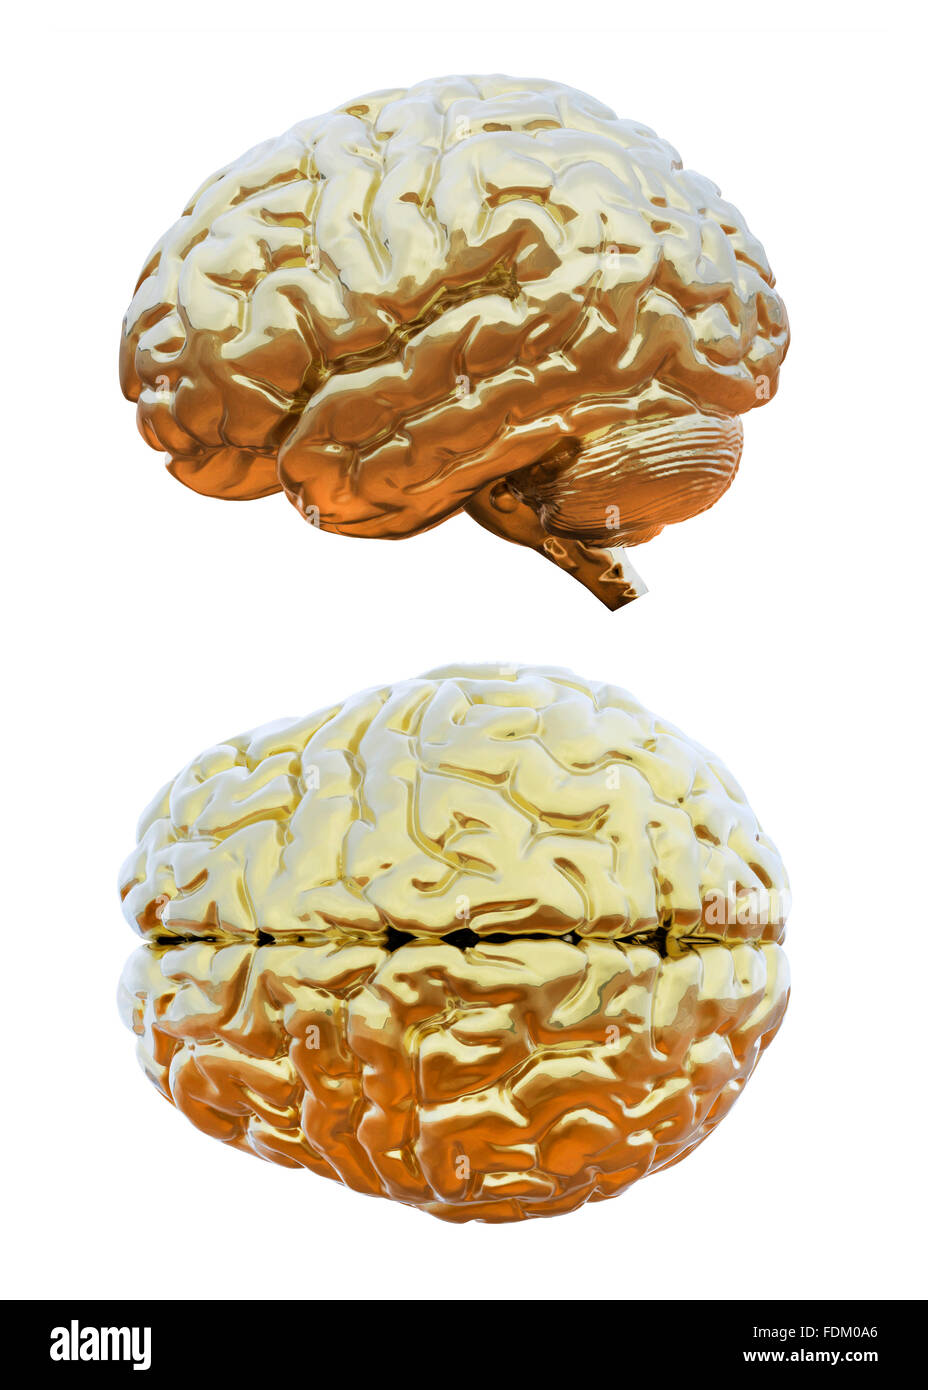 Cerveau humain golden Photo Stock